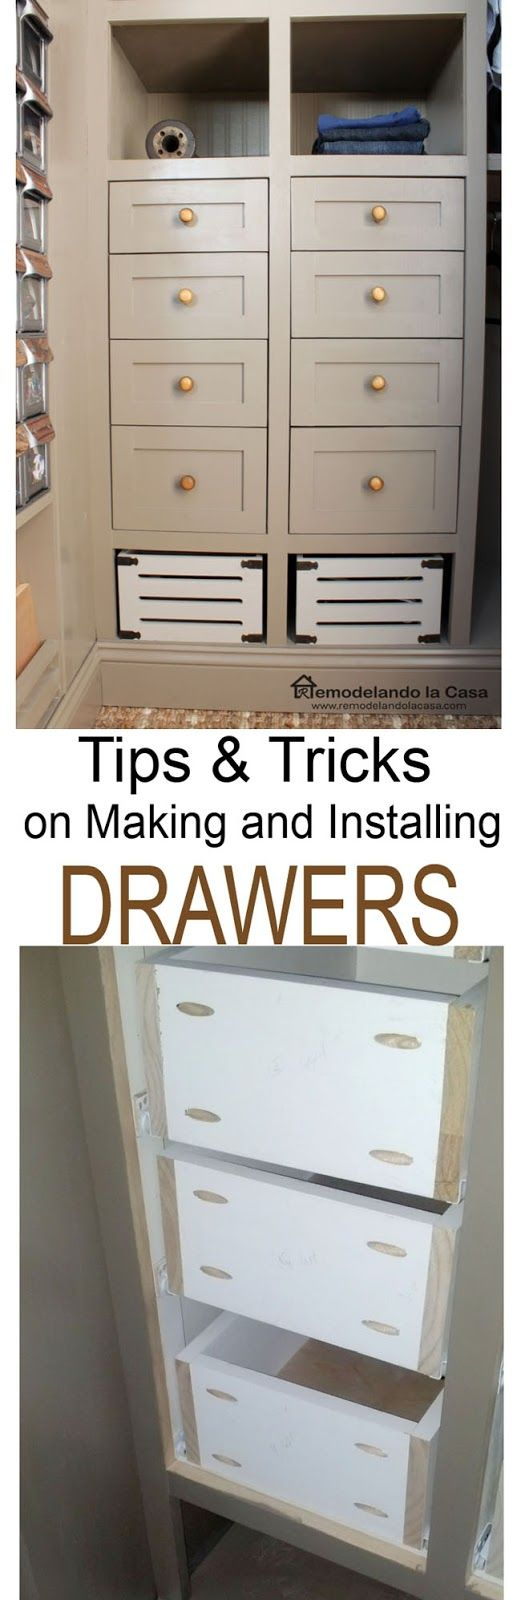 Replace kitchen cabinet drawer slides - Making And Installing Drawers Very Good Info On How To Build Drawers And Install Slides